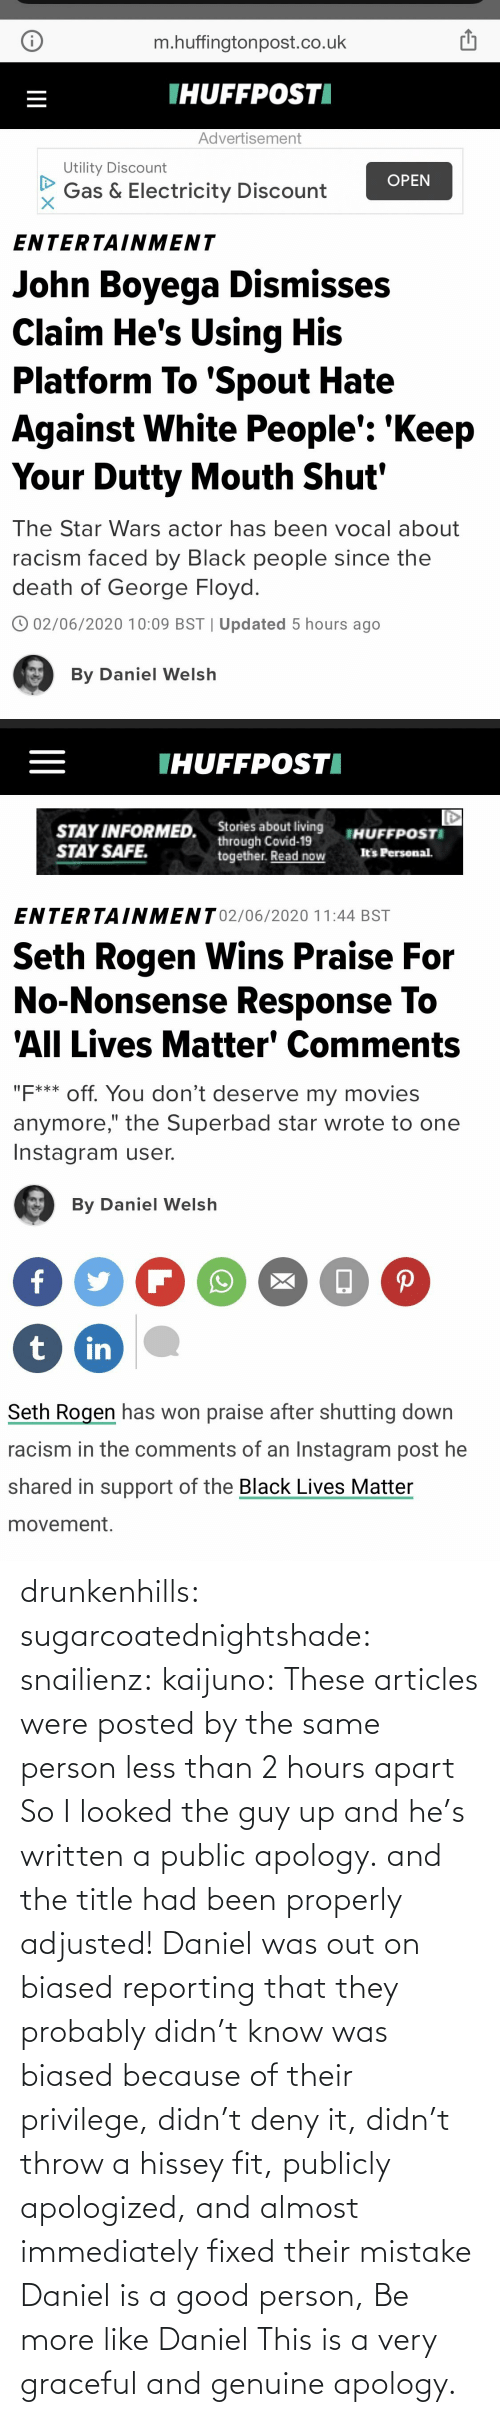 Fixed: drunkenhills:  sugarcoatednightshade:   snailienz:  kaijuno: These articles were posted by the same person less than 2 hours apart    So I looked the guy up and he's written a public apology. and the title had been properly adjusted!    Daniel was out on biased reporting that they probably didn't know was biased because of their privilege, didn't deny it, didn't throw a hissey fit, publicly apologized, and almost immediately fixed their mistake Daniel is a good person, Be more like Daniel     This is a very graceful and genuine apology.